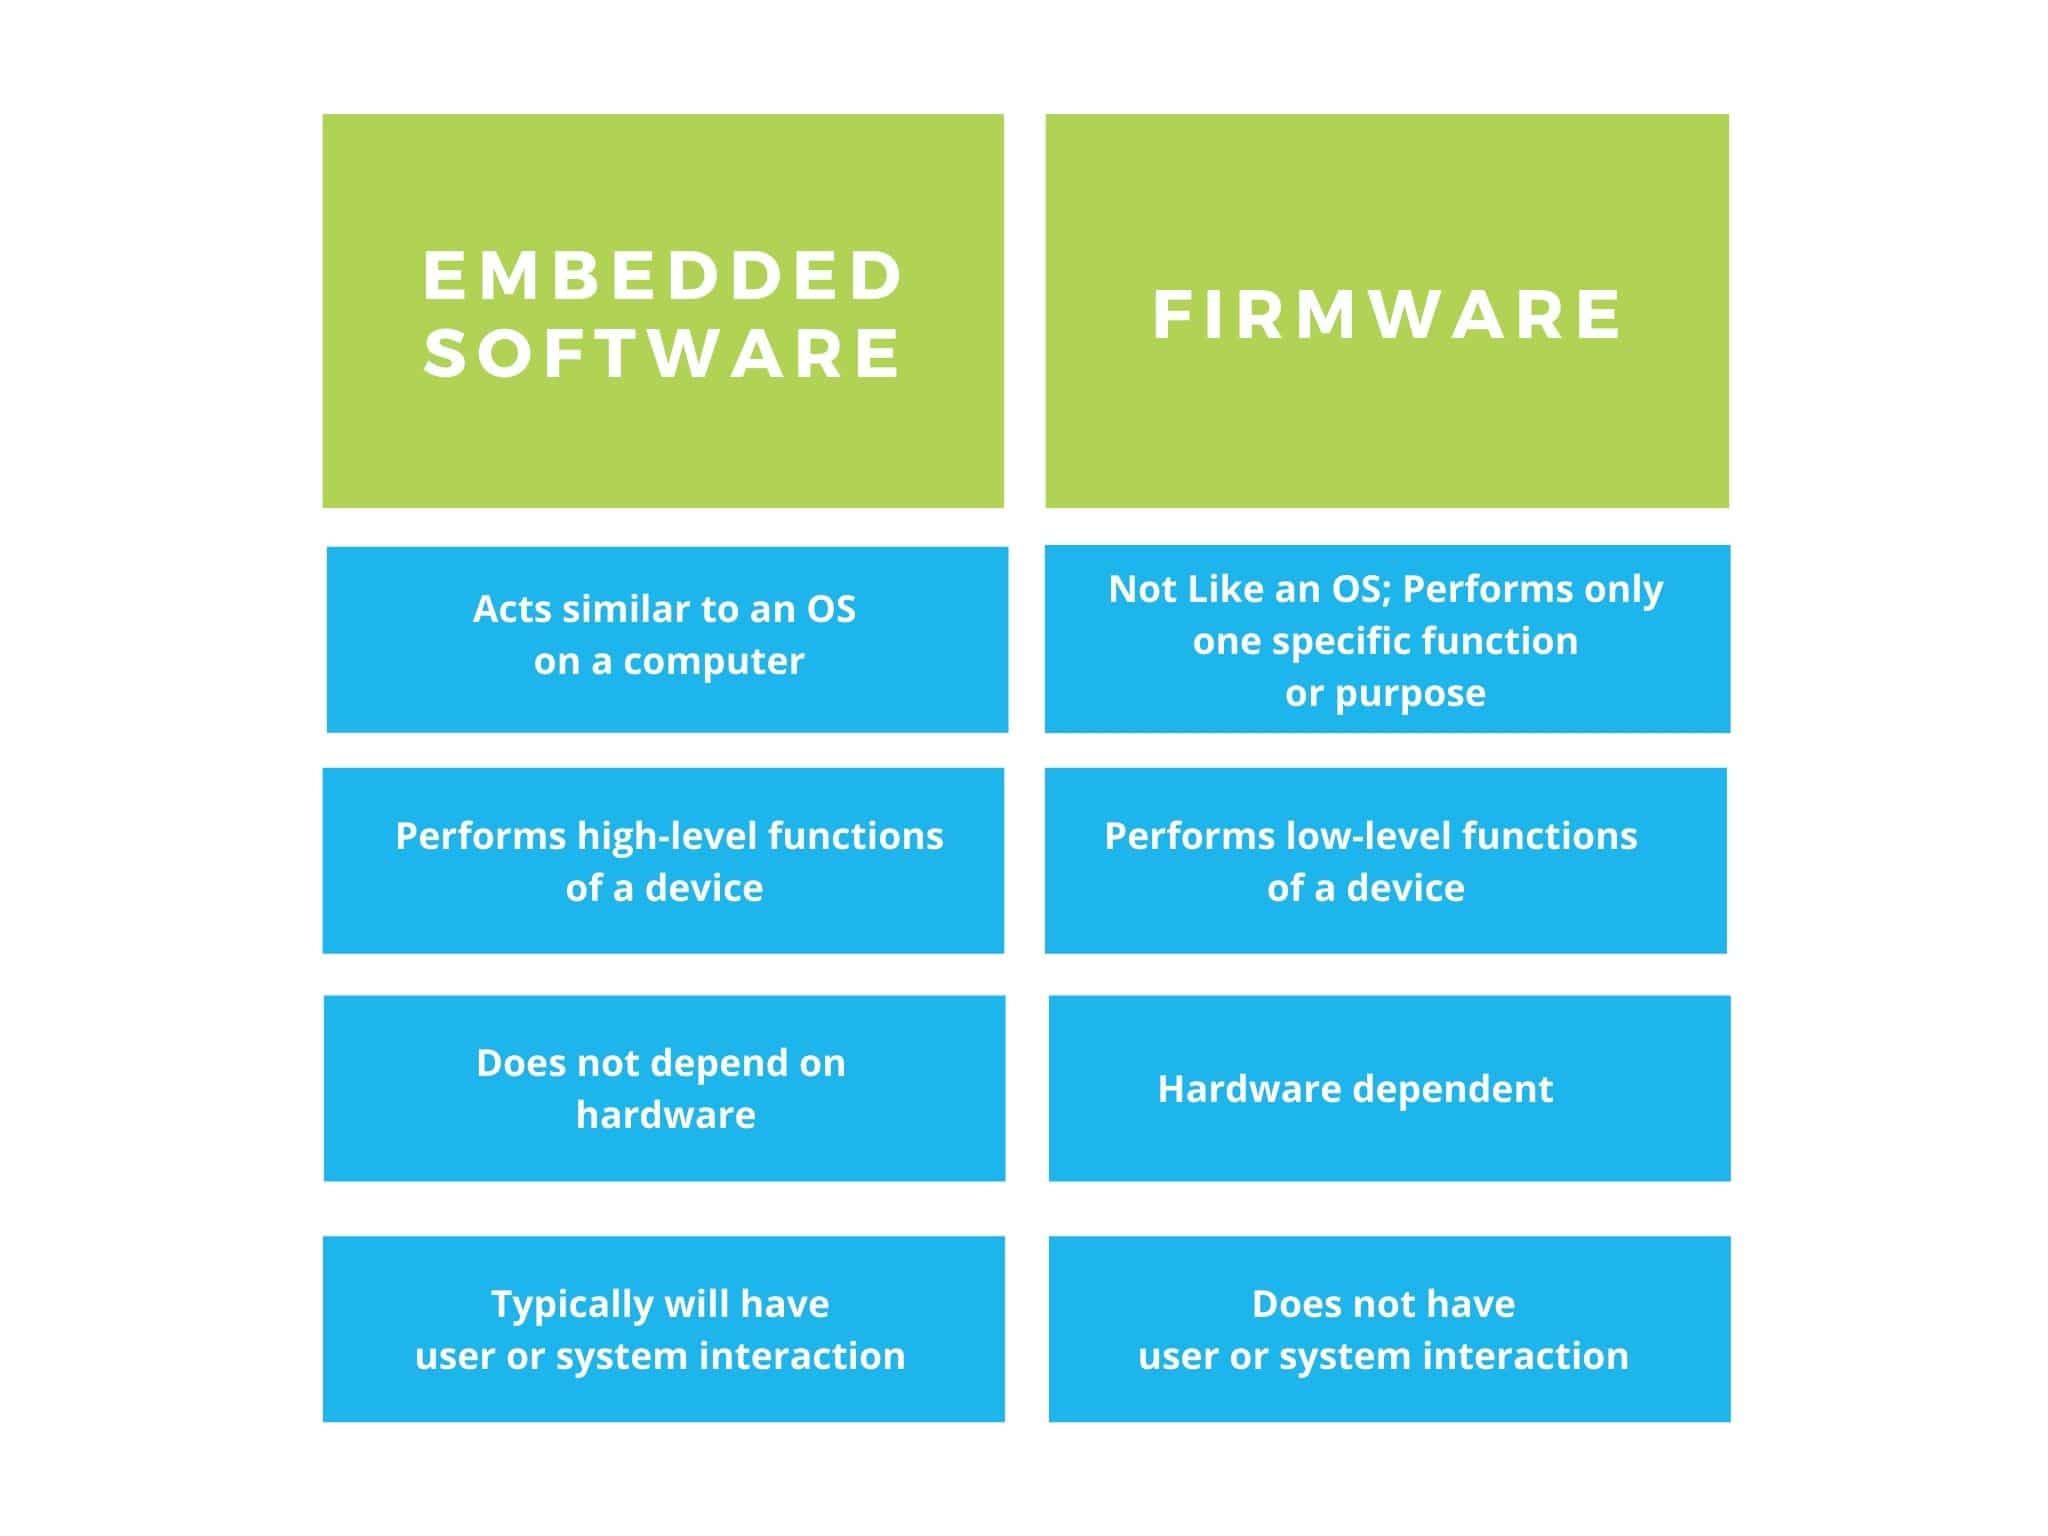 embedded software vs firmware graphic